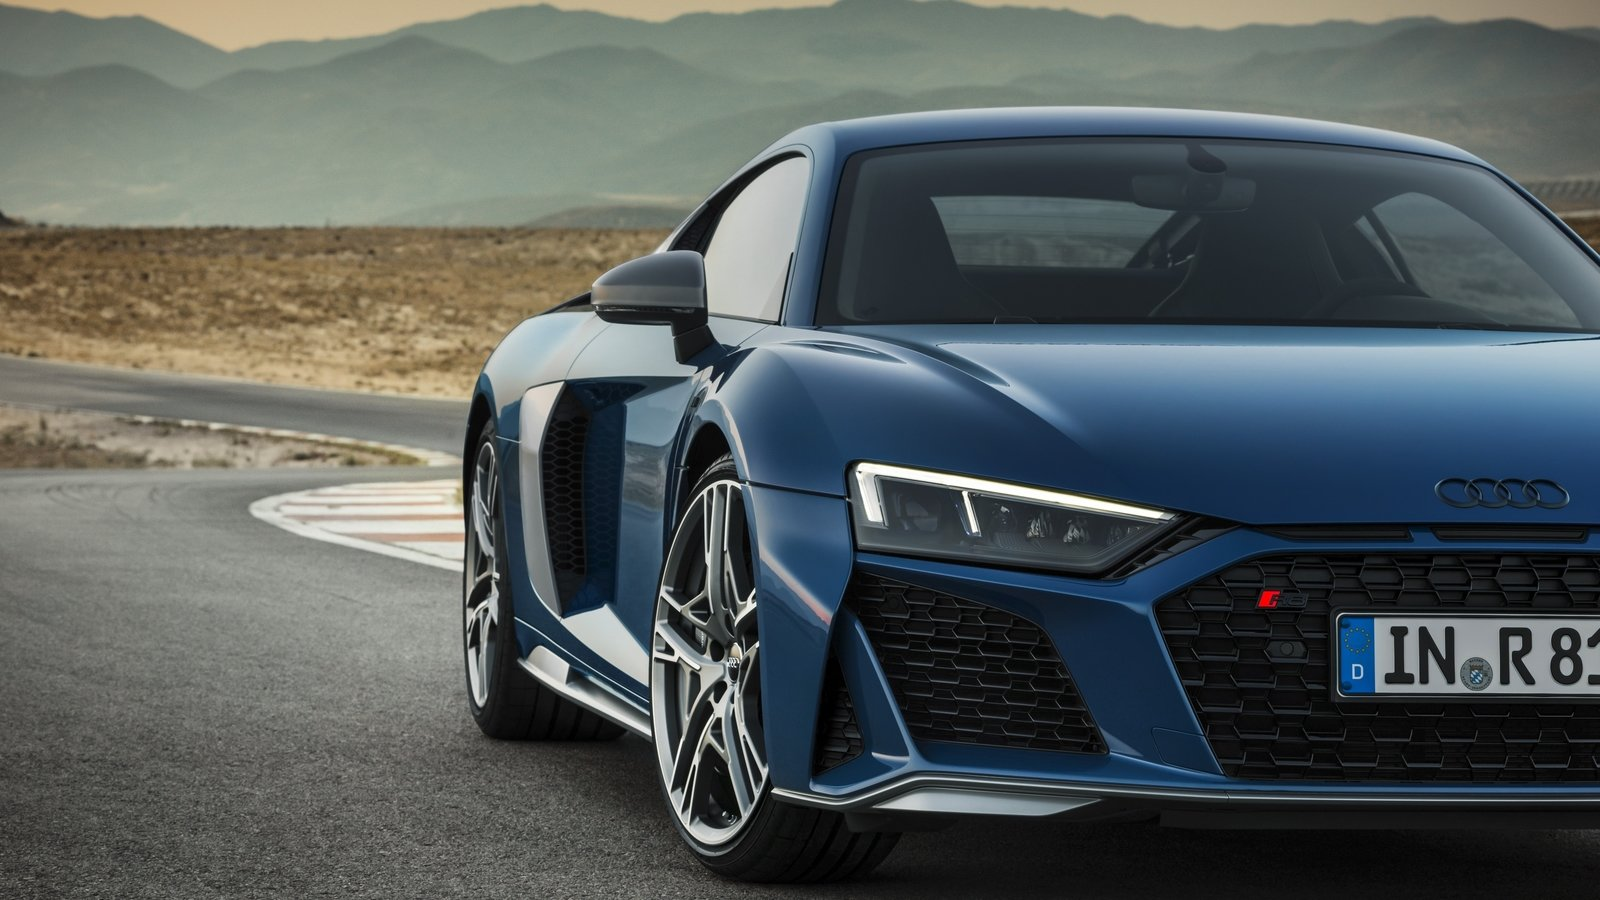 Wallpaper of the day 2019 audi r8 top speed - Audi car wallpaper 2018 ...